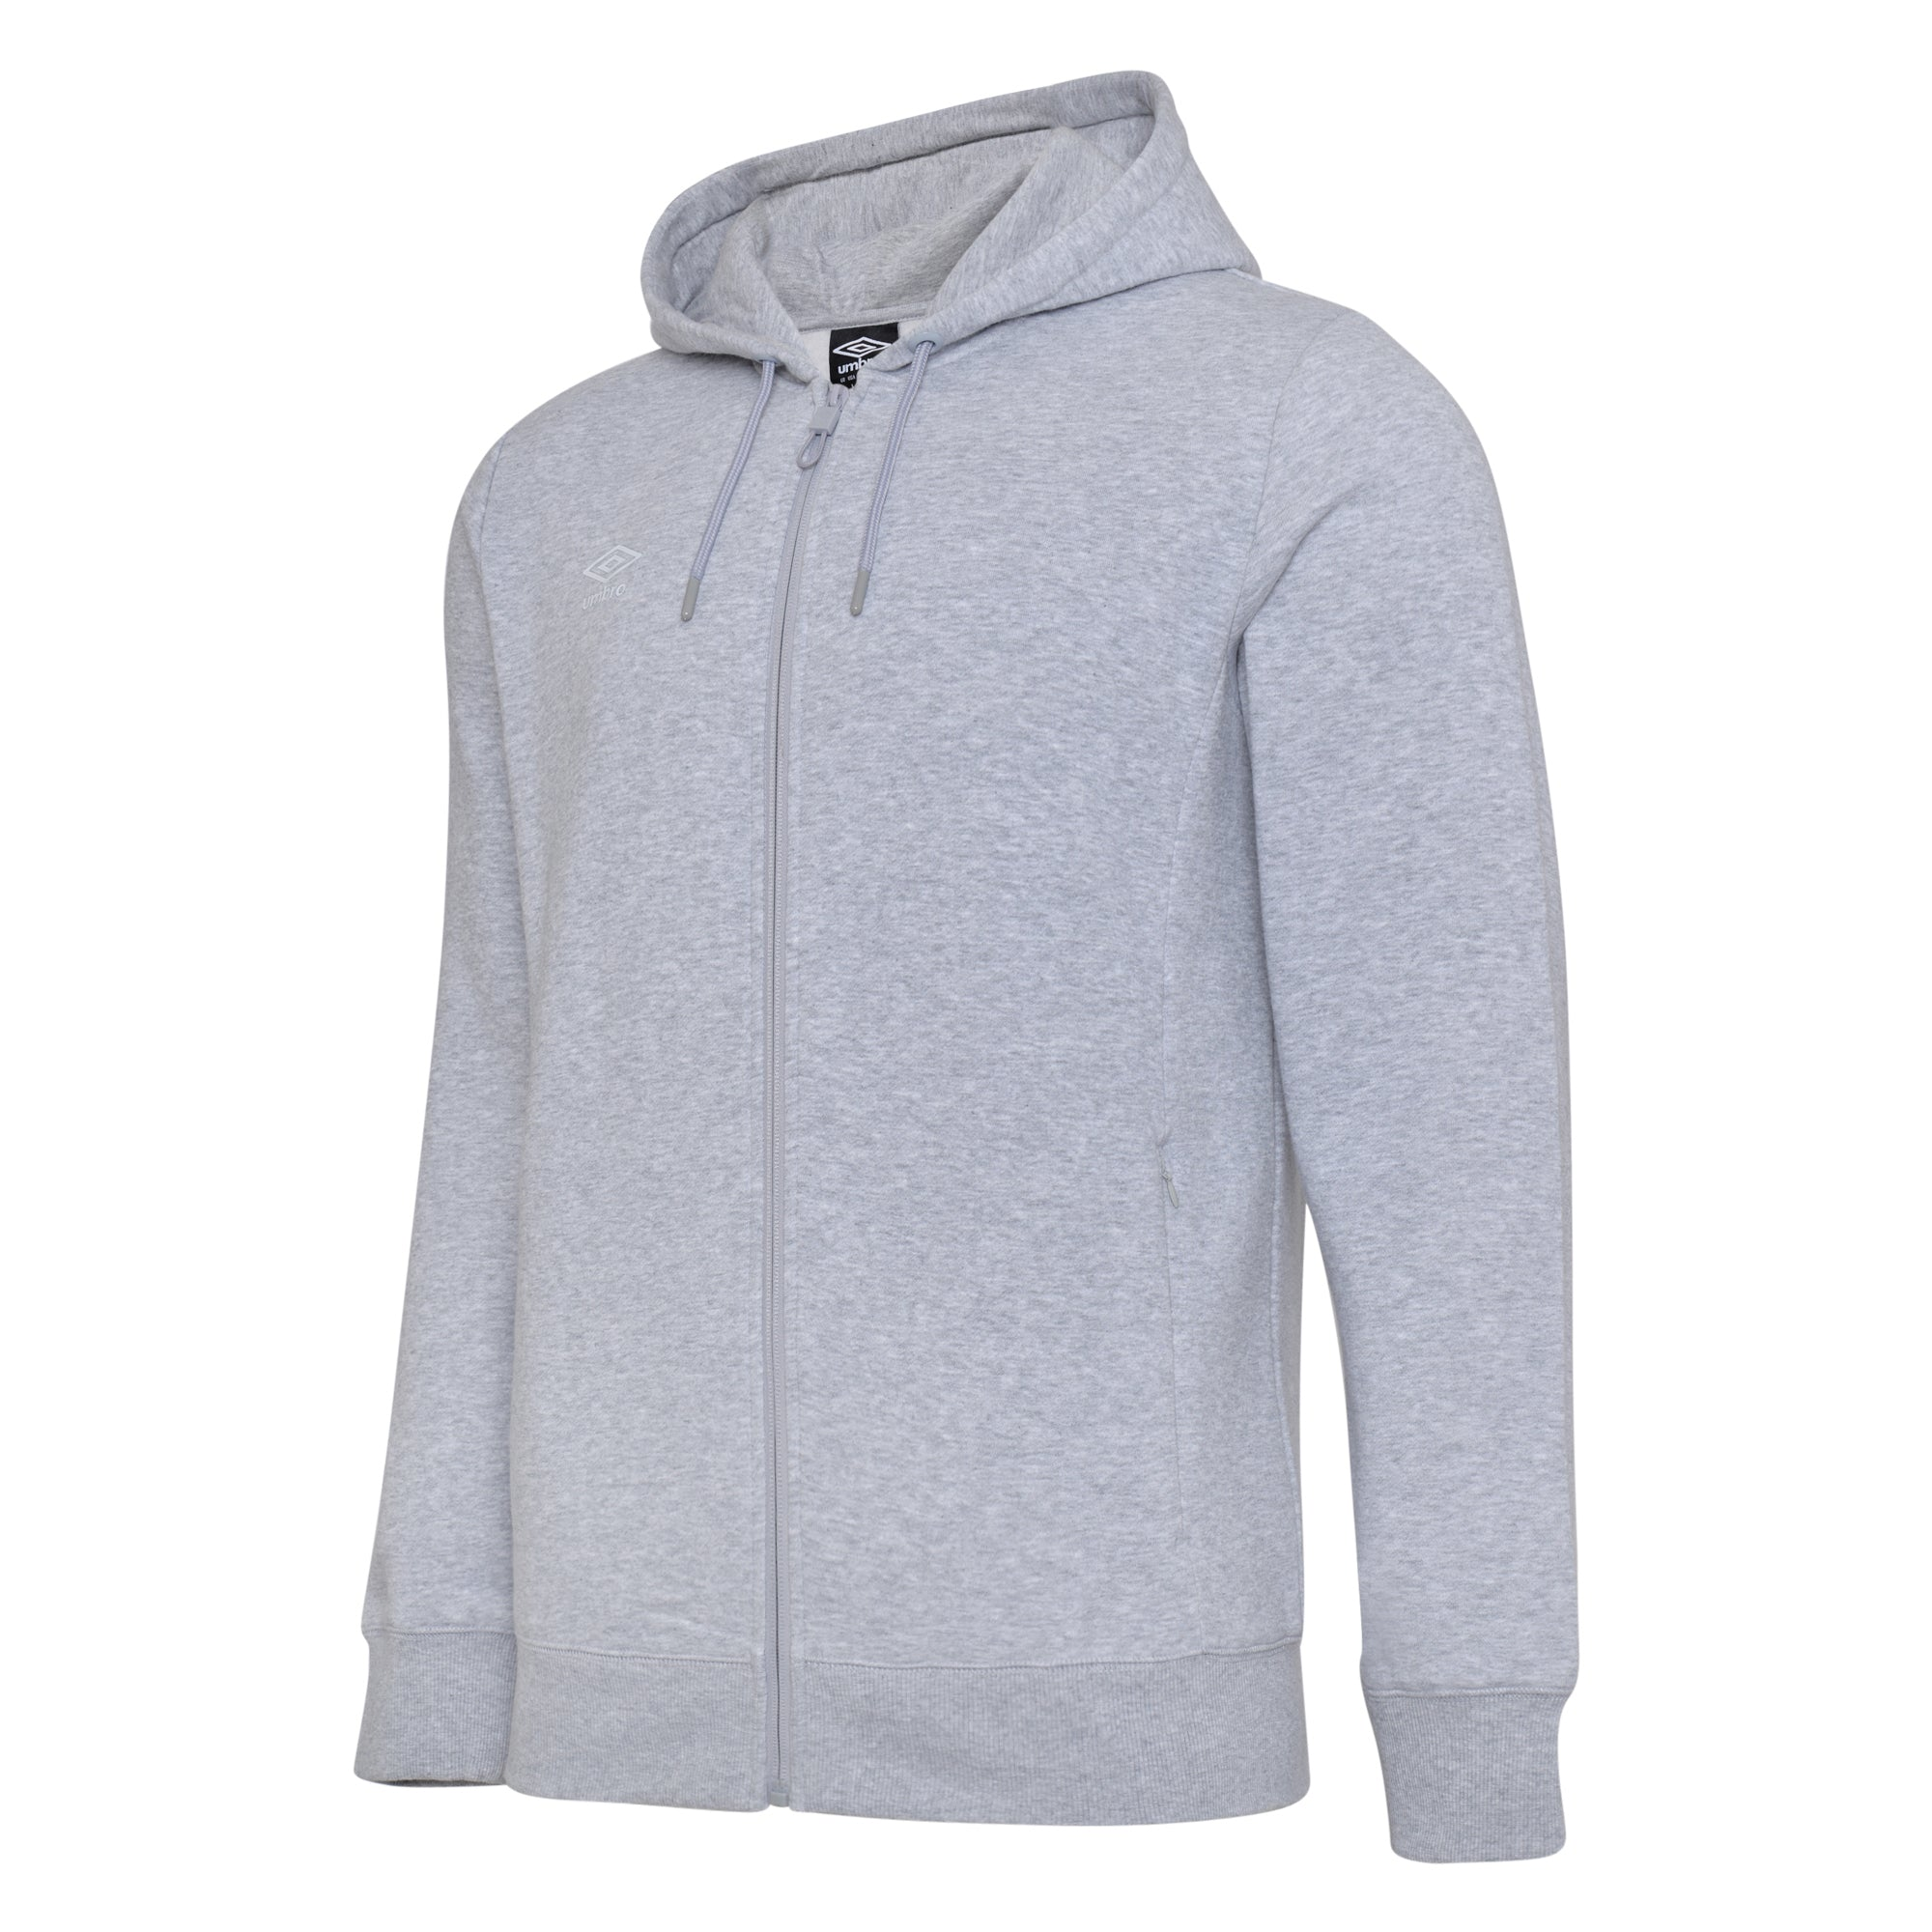 Umbro Club Leisure Zipped Hoody - Grey Marl/White